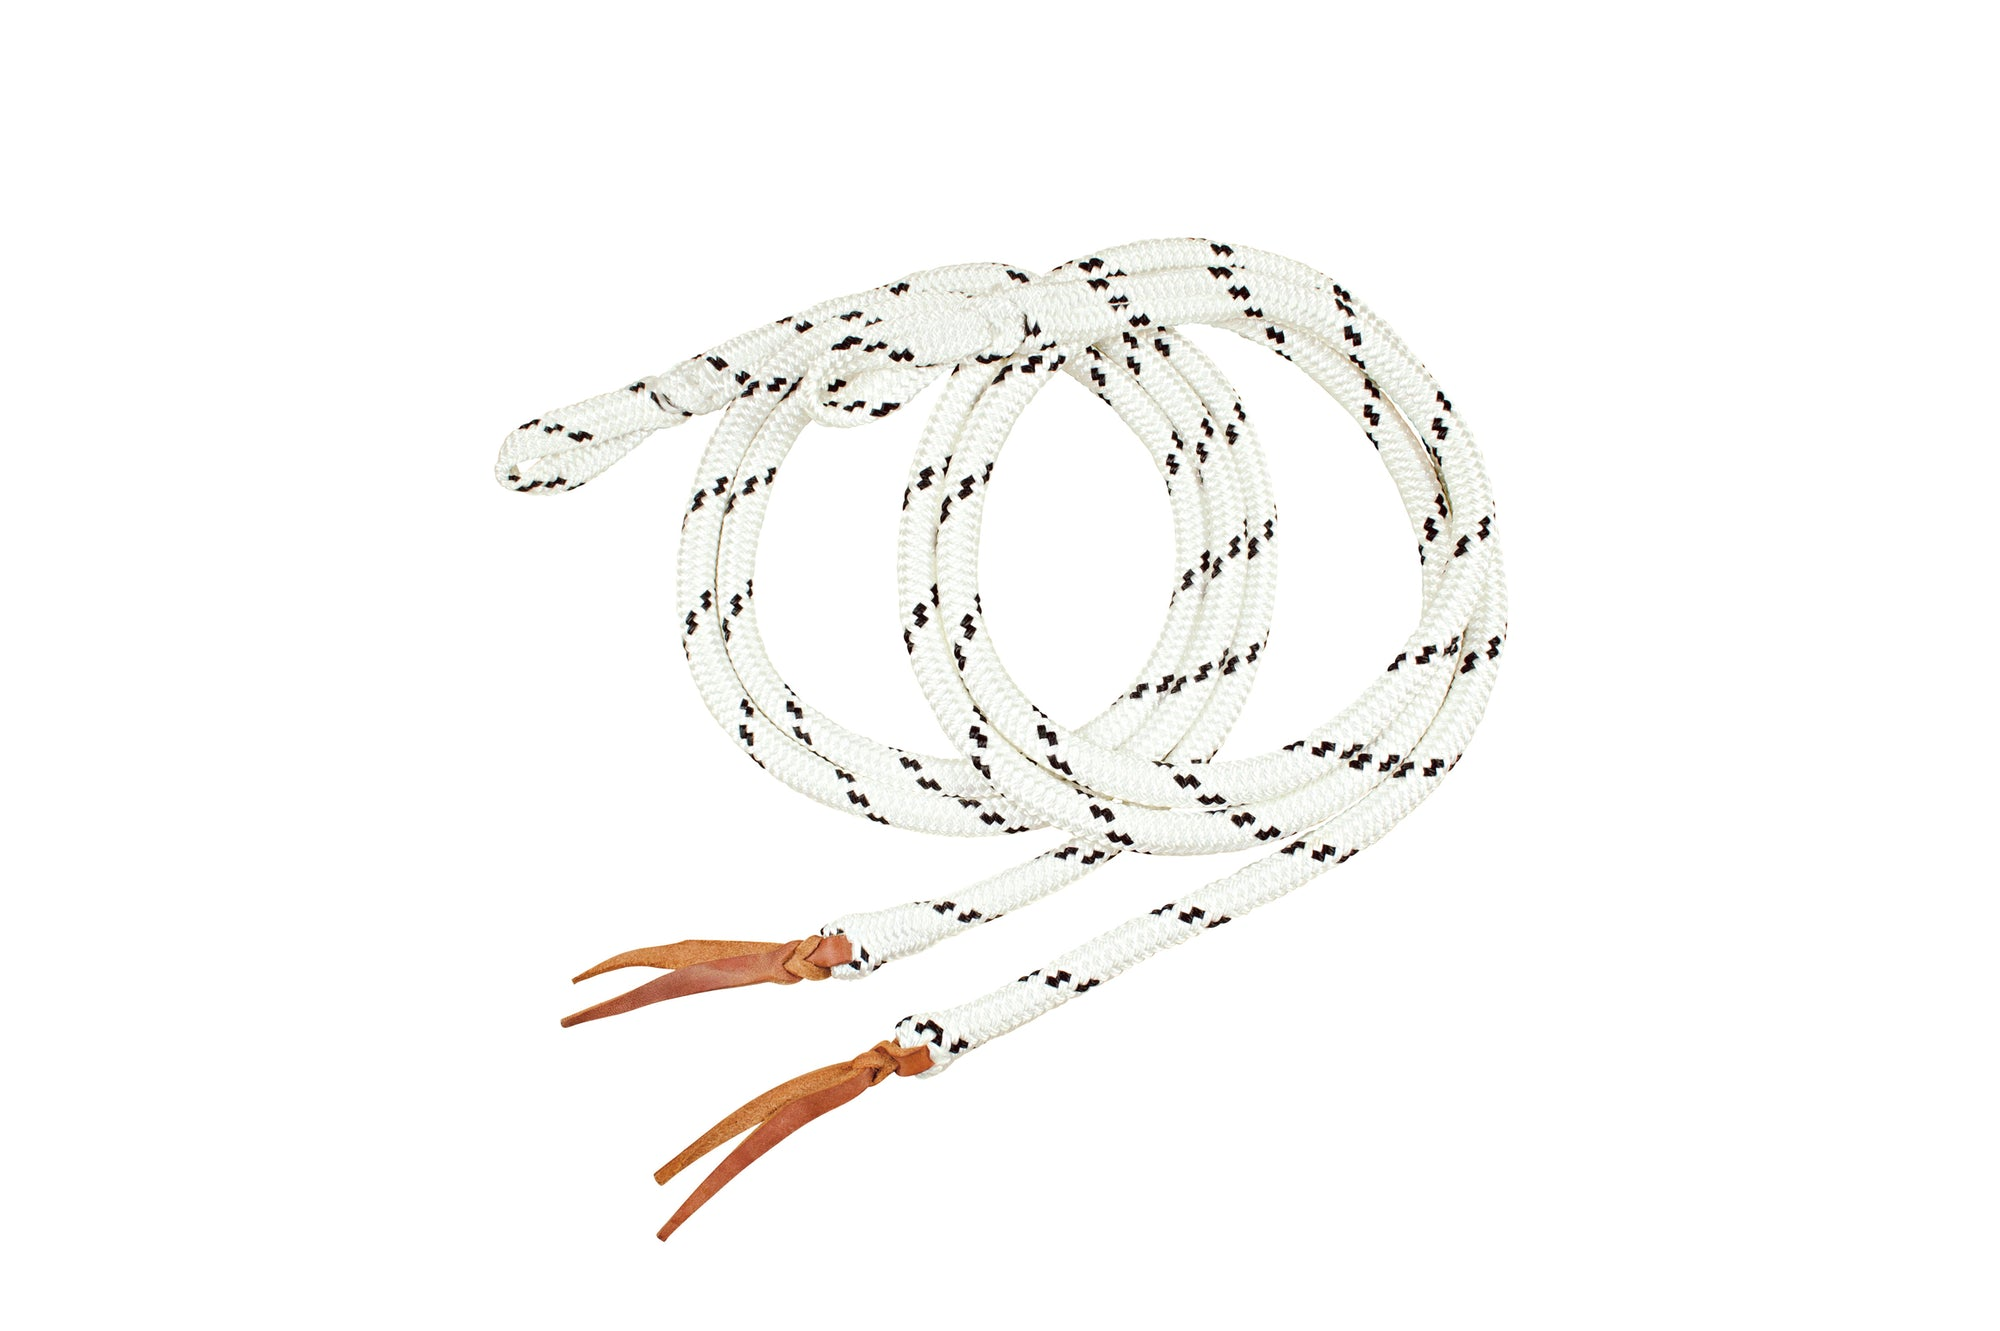 Angus Barrett's Lead Ropes are available in two lengths and two thicknesses